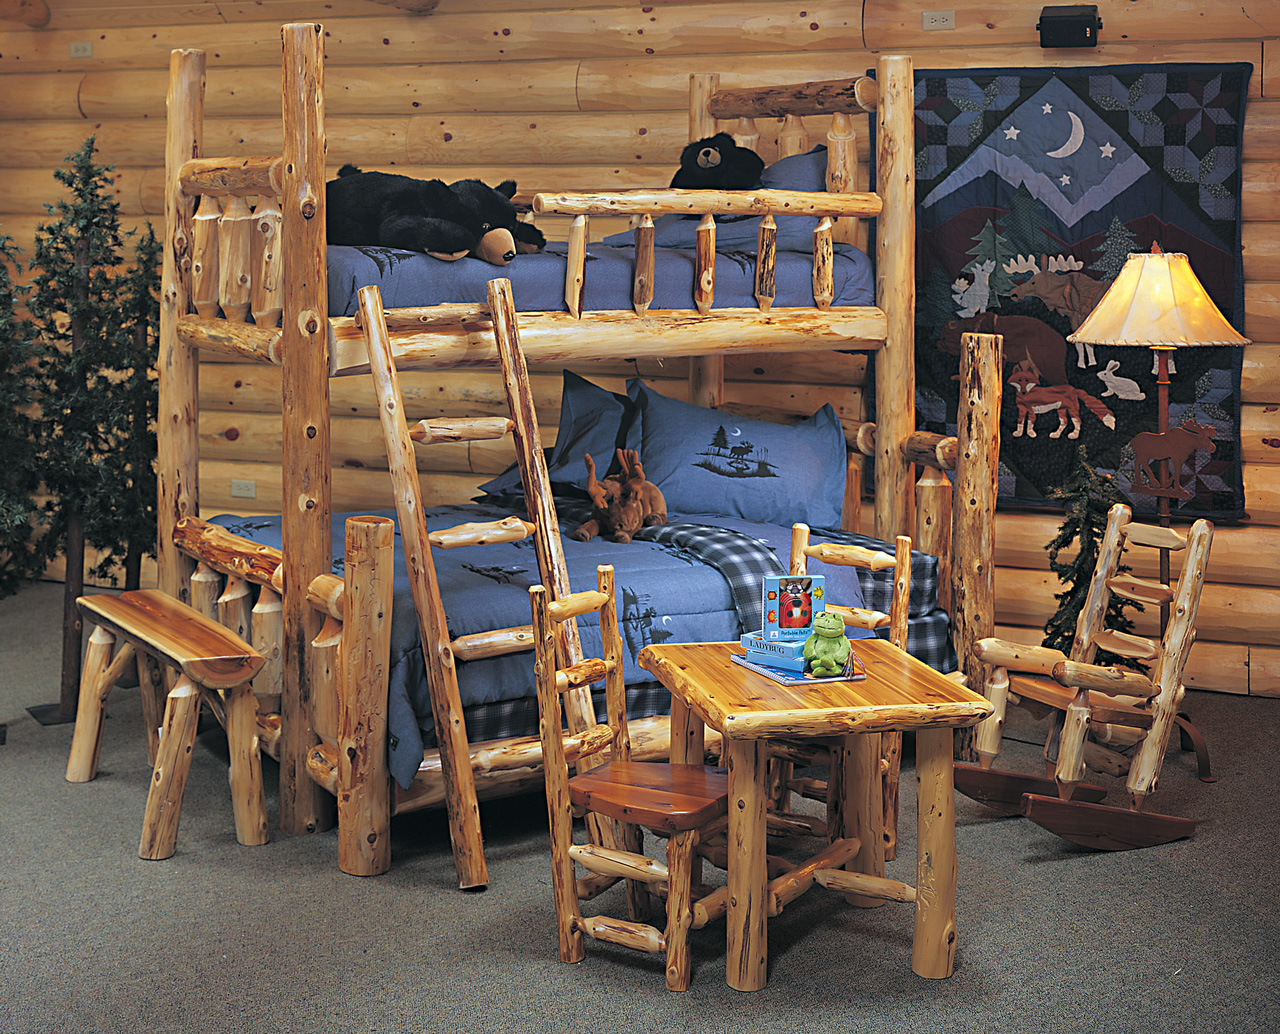 Cedar Log Bed Kits - Bunk Bed | Rustic Furniture Mall by Timber Creek